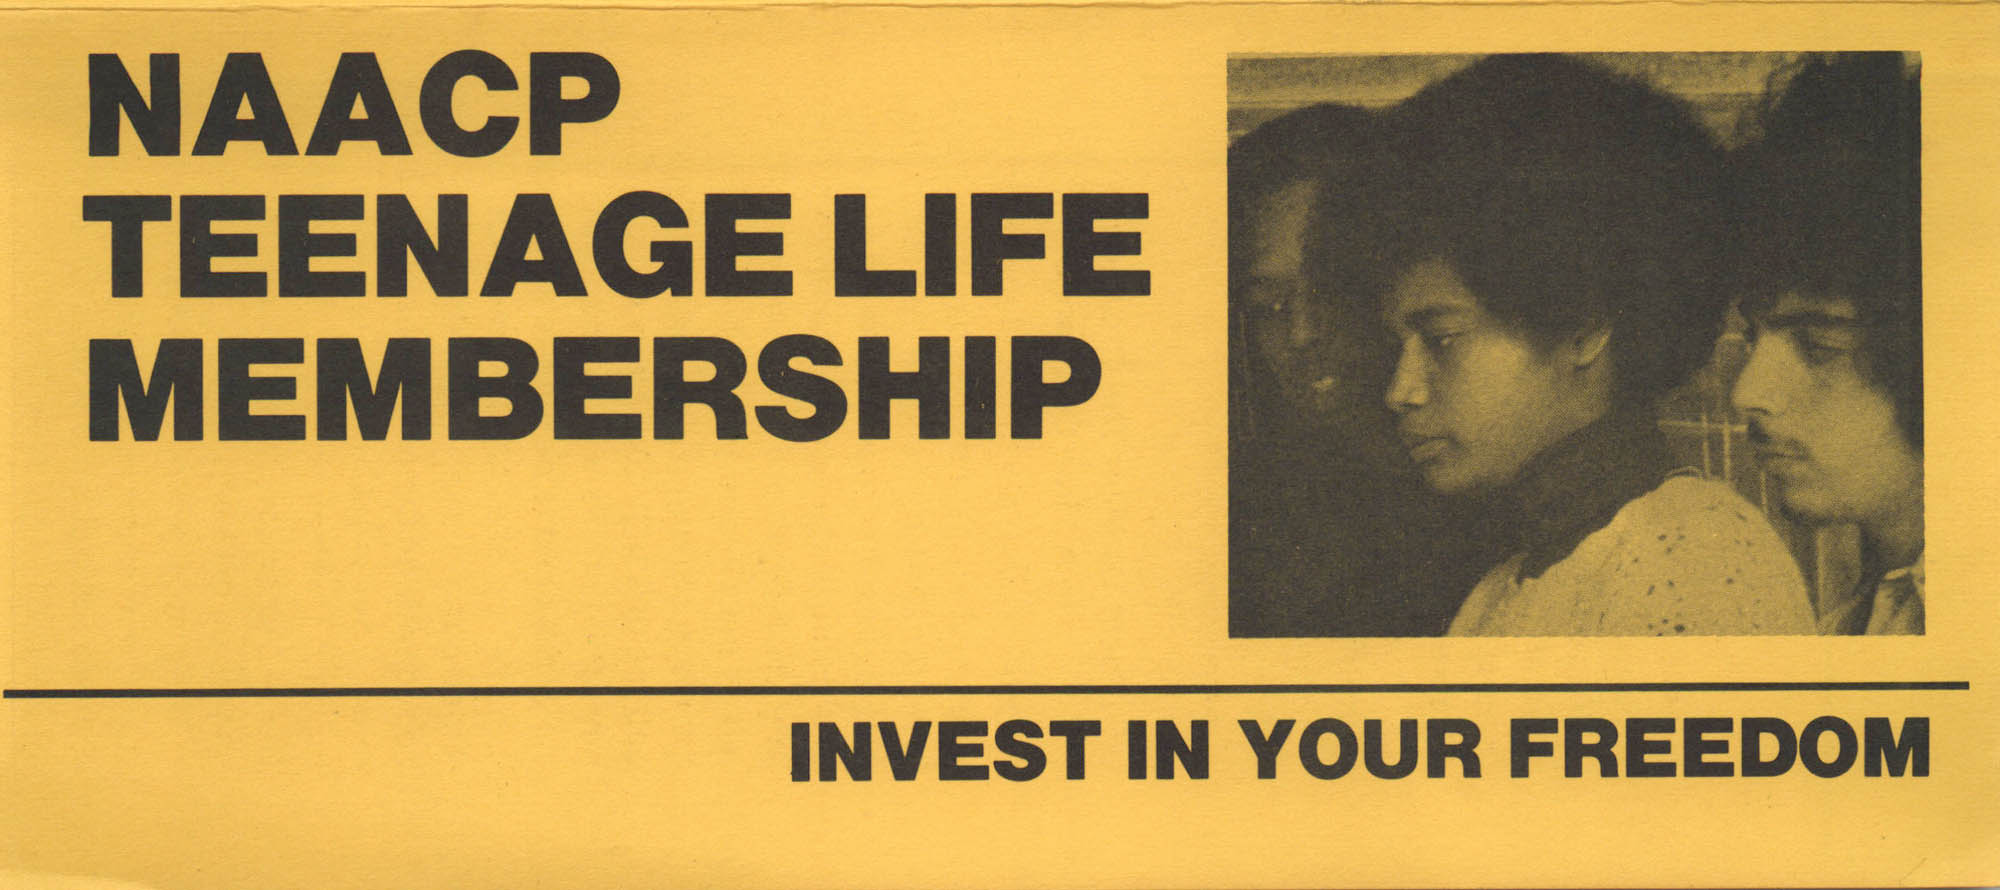 Brochure, NAACP Teen Life Membership, Invest in Your Freedom, NAACP